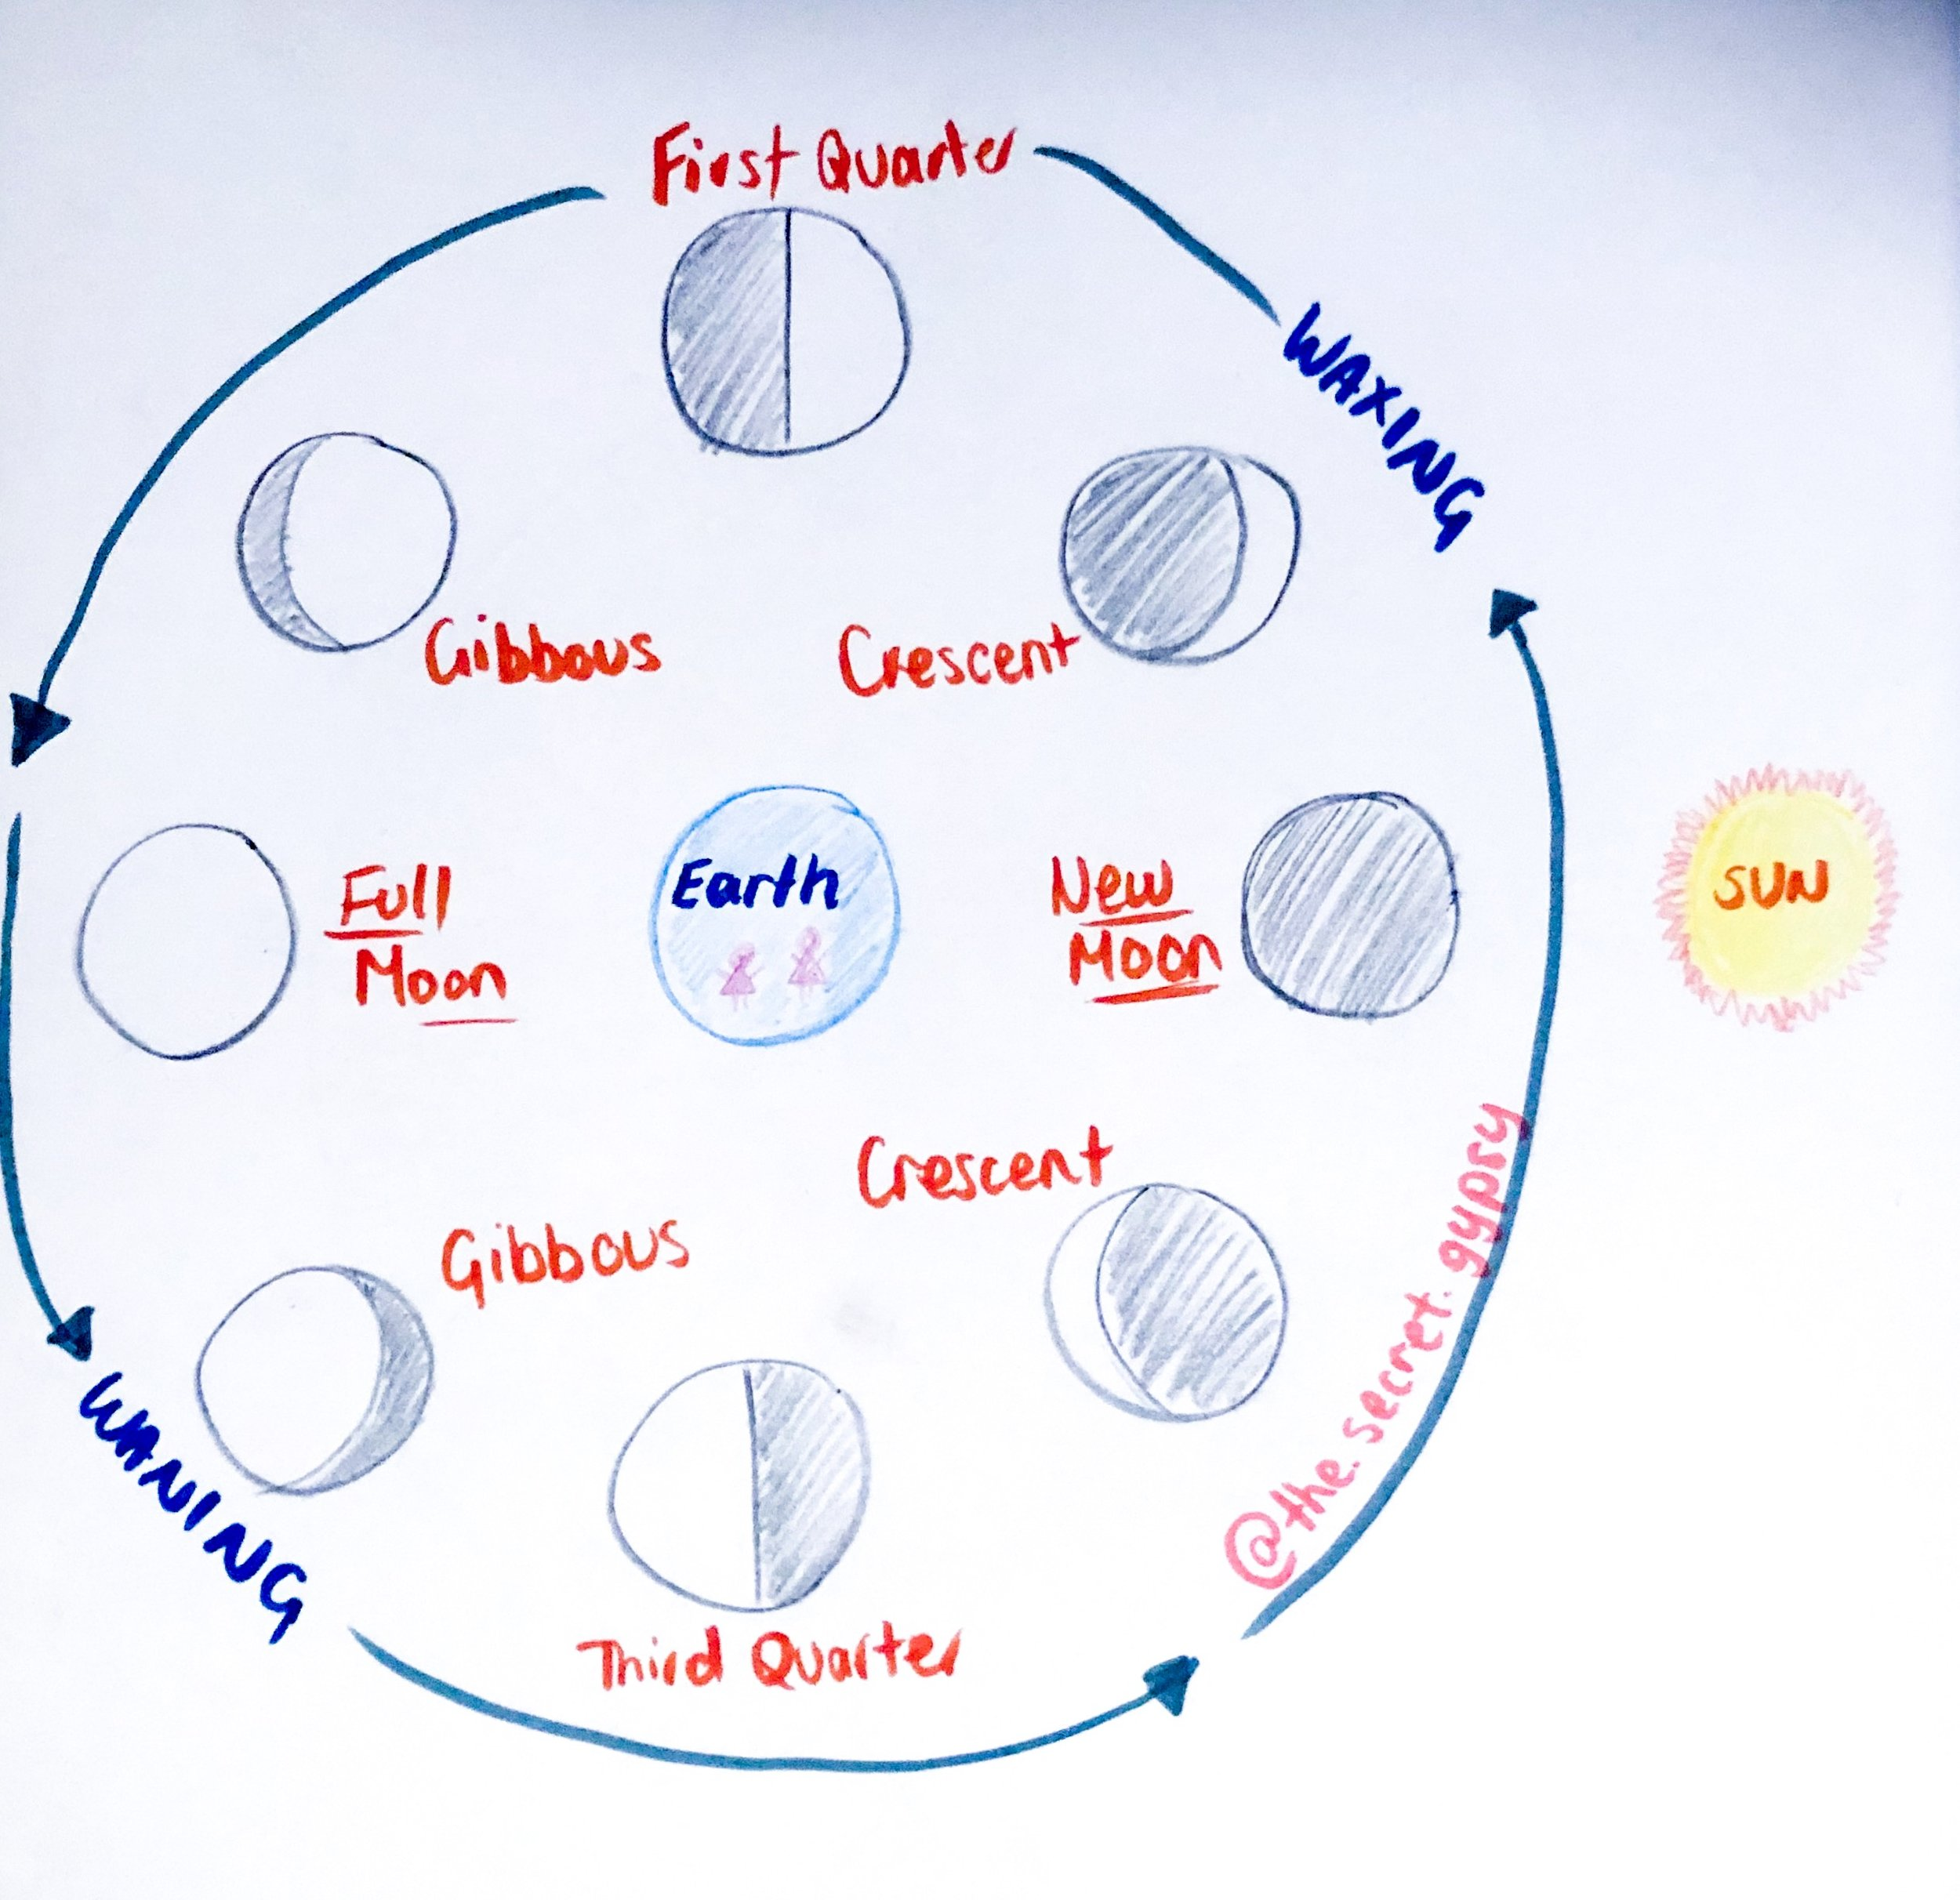 Moon Cycle Diagram.JPG